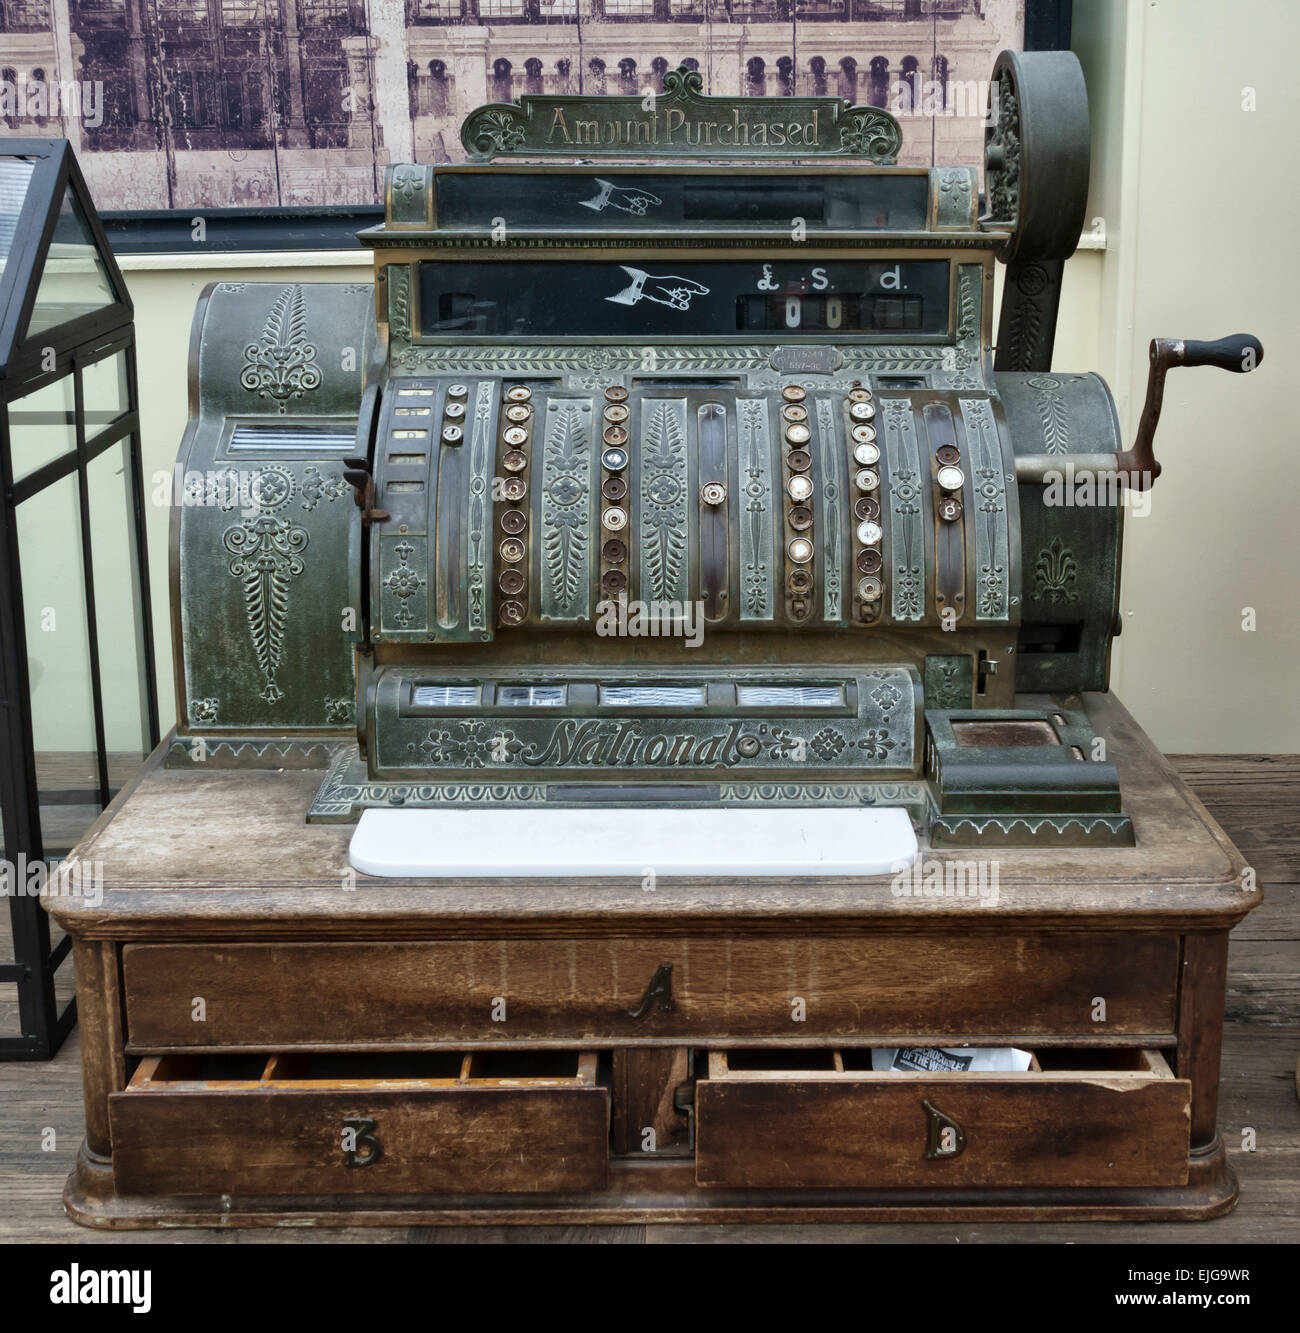 An old mechanical cash register or till, manufactured around 1910 by the National Cash Register company - Stock Image